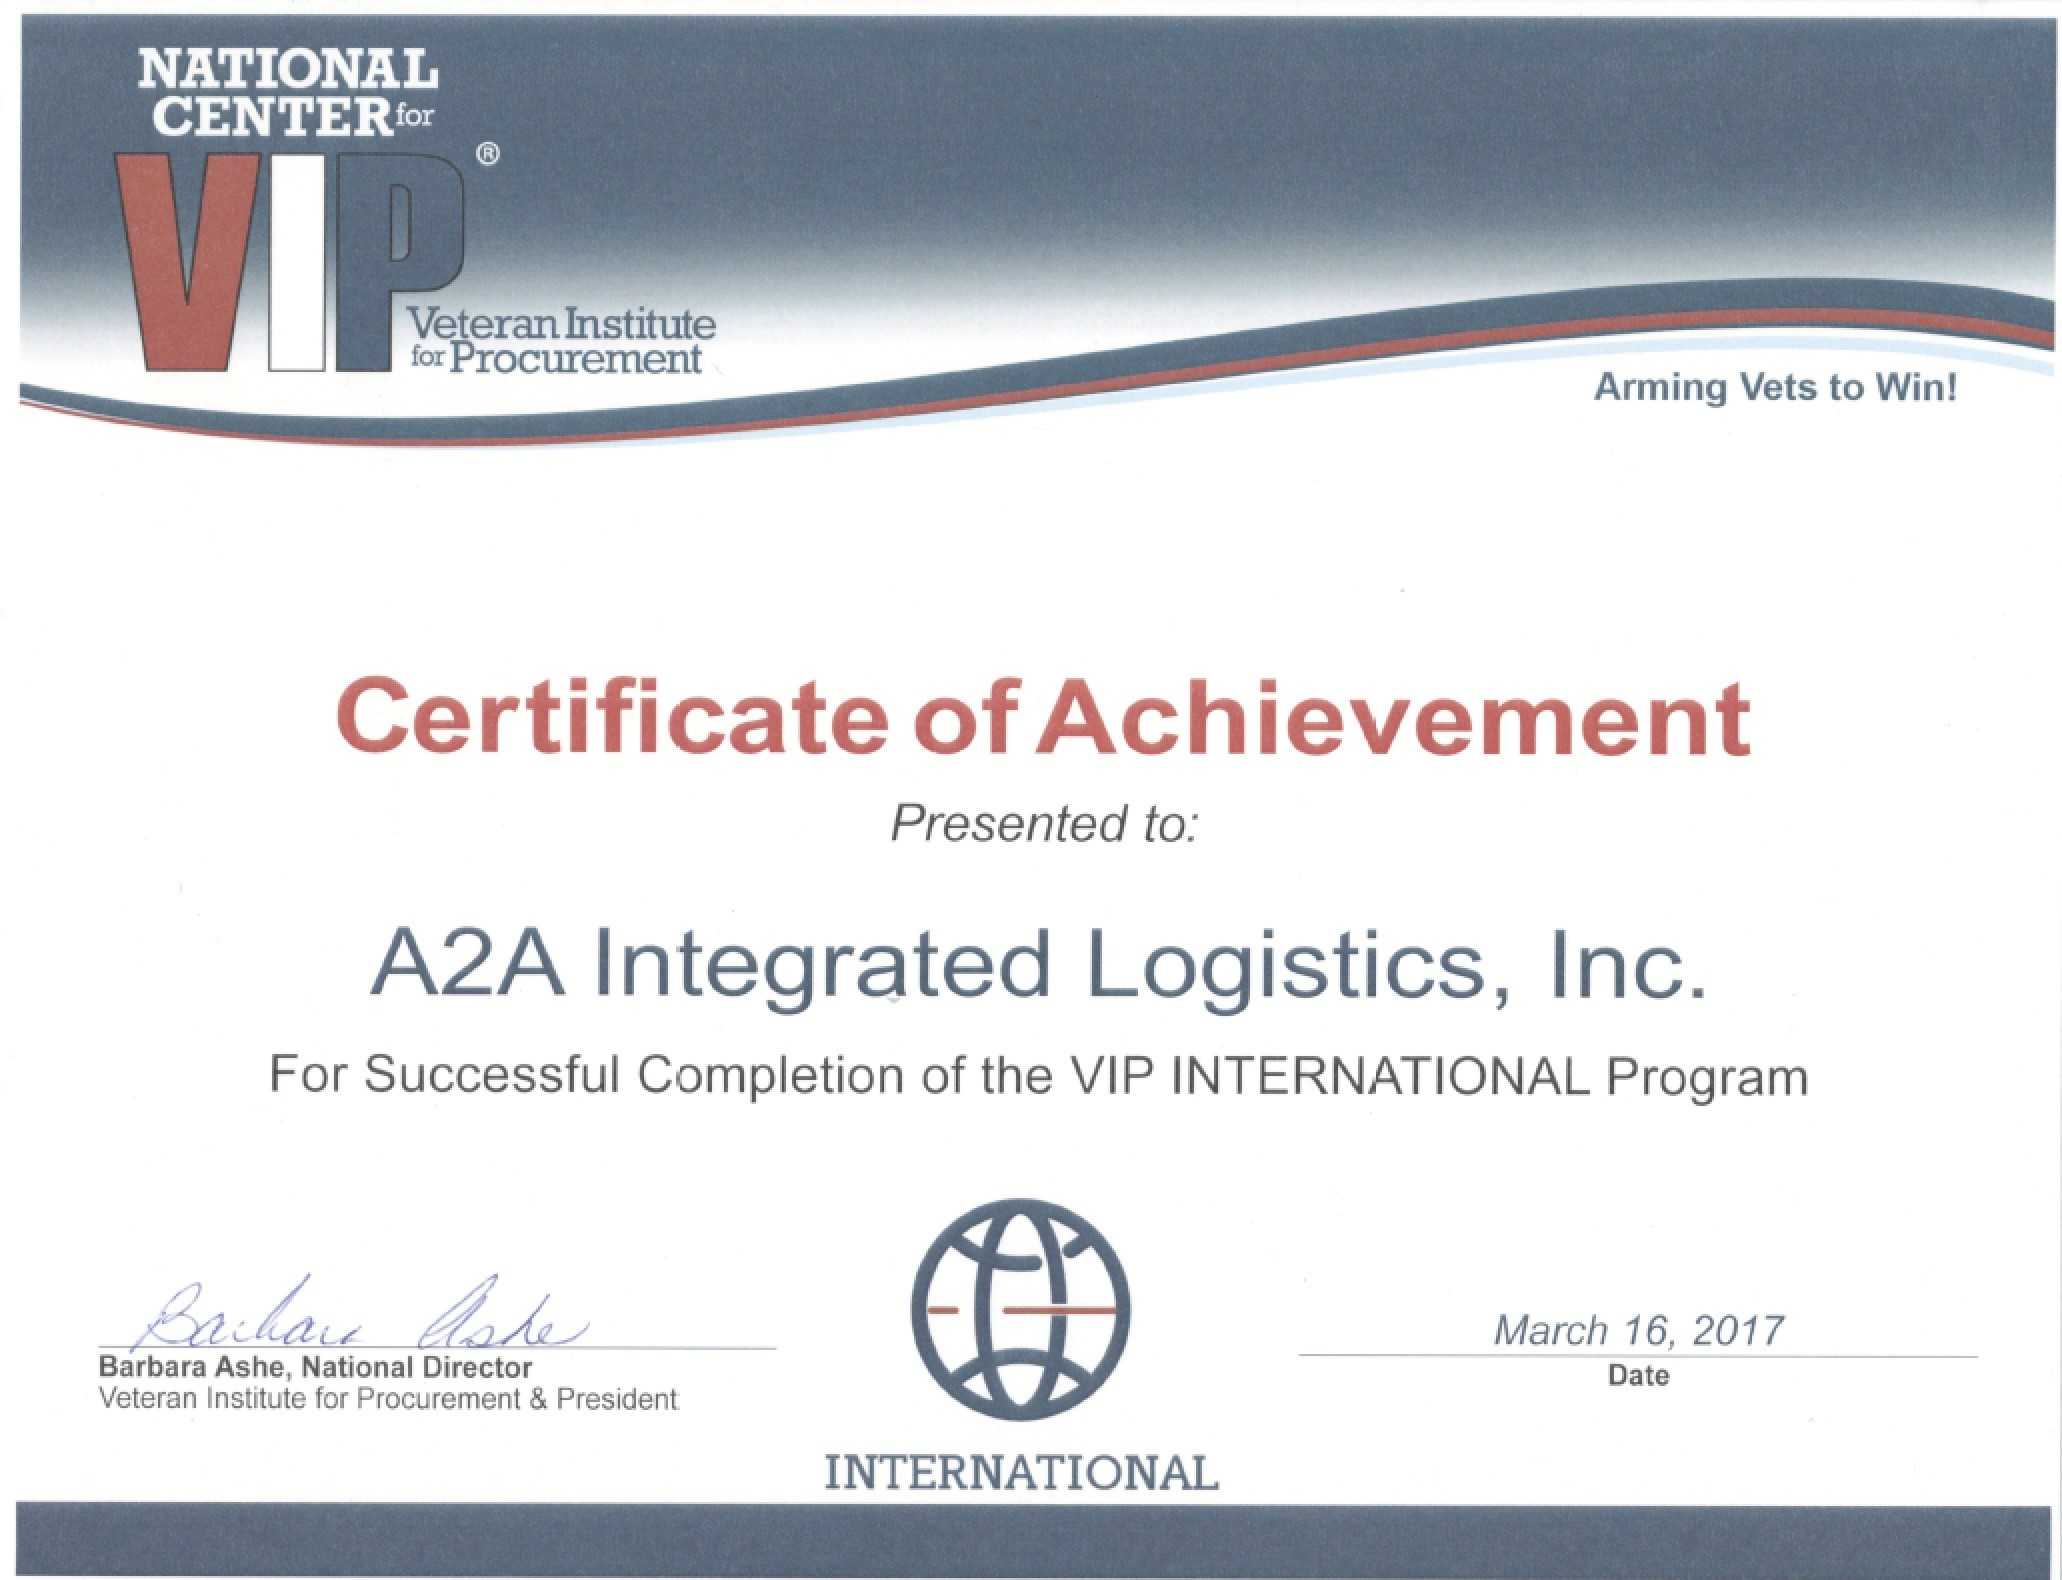 Certifications a2a logistics a2a is a certified small business disadvantaged business enterprise through the port authority of new york new jersey supporting numerous customer needs xflitez Images